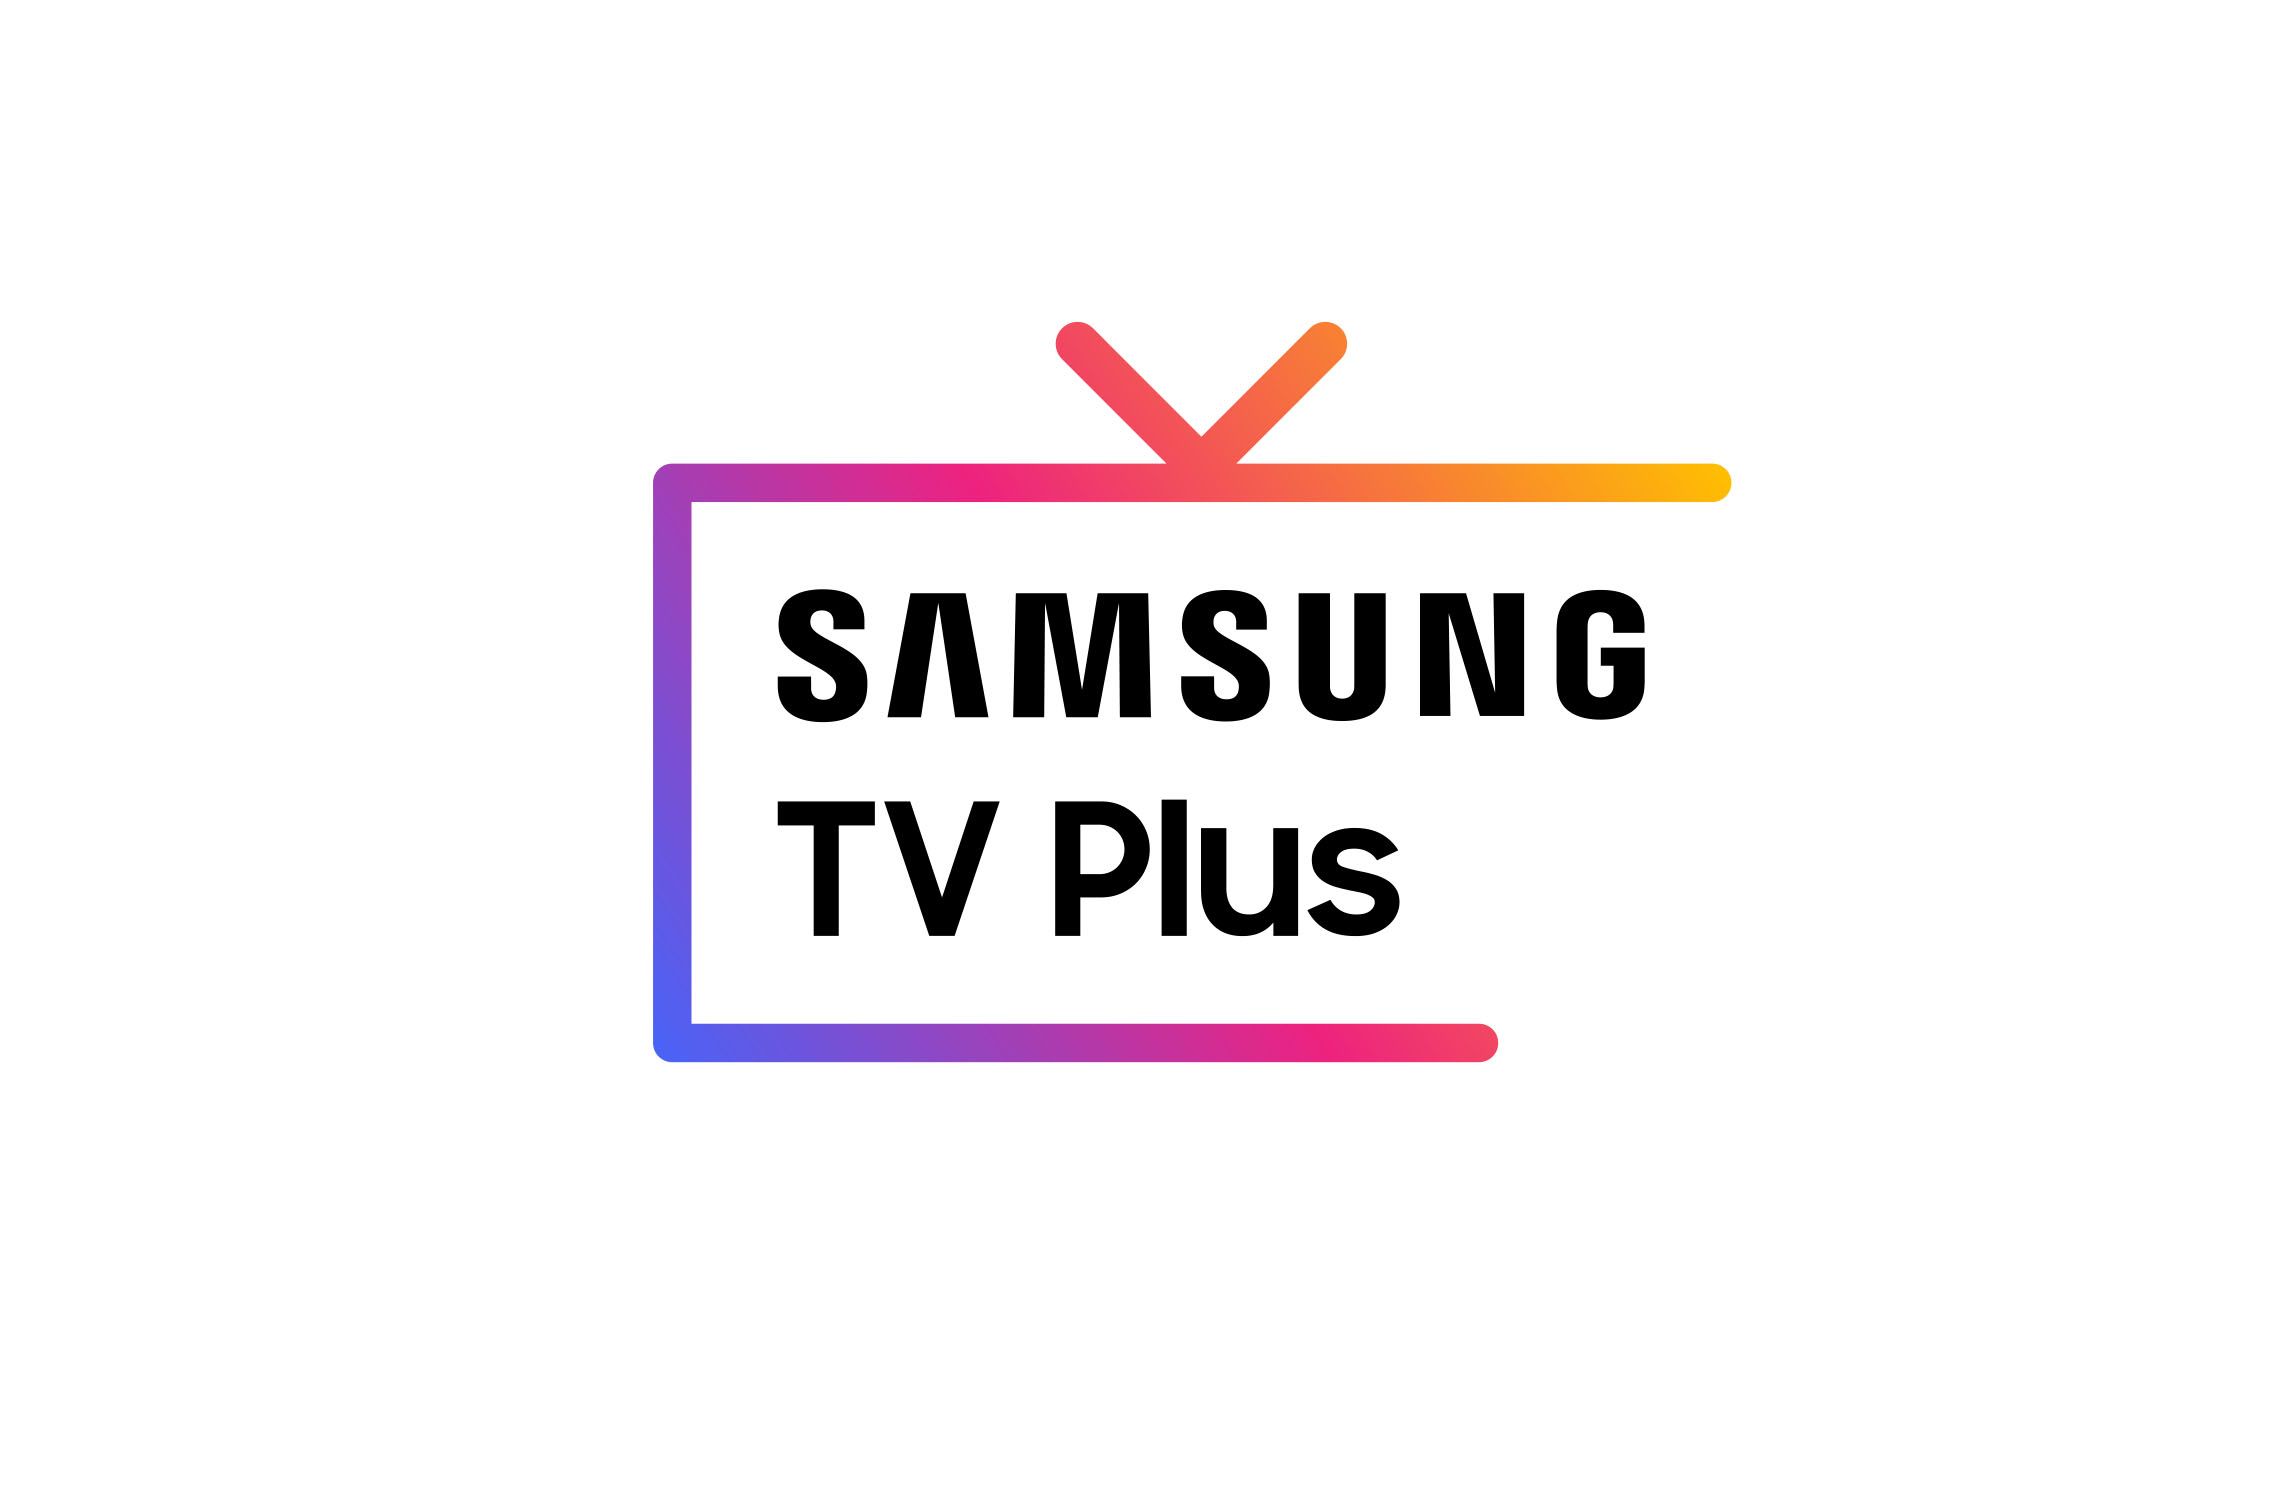 World Poker Tour fans in Europe can now watch the WPT on Samsung TV Plus.